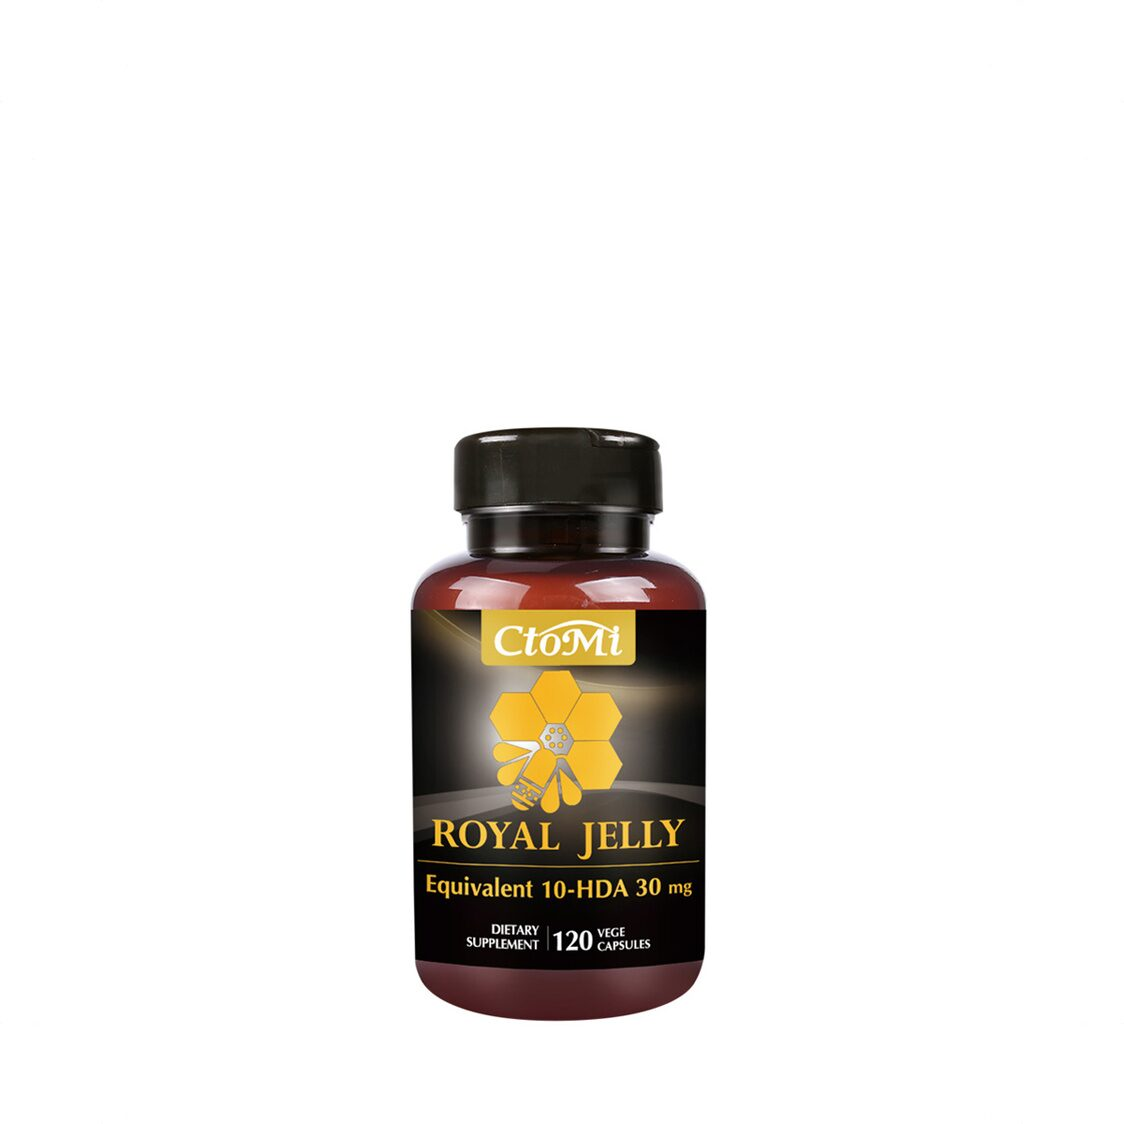 Royal Jelly 120 Capsules